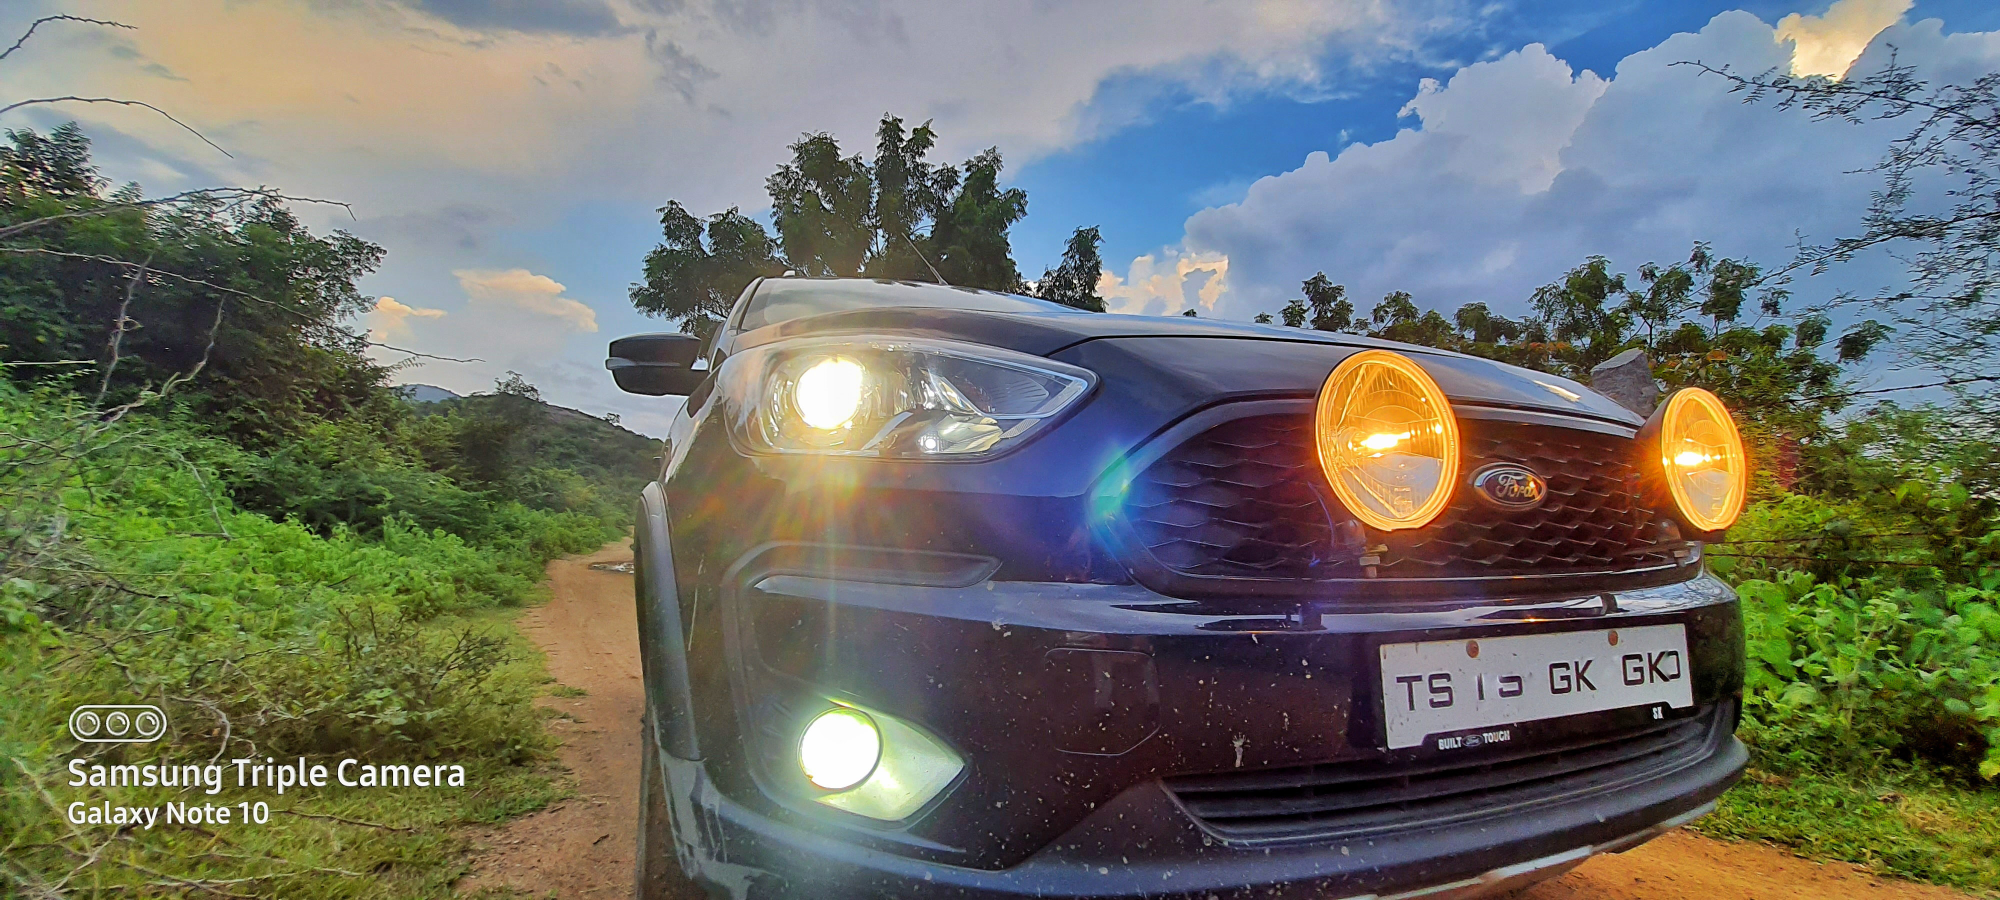 The Automobile Lighting - Everything You Would Want To Know About Lights.